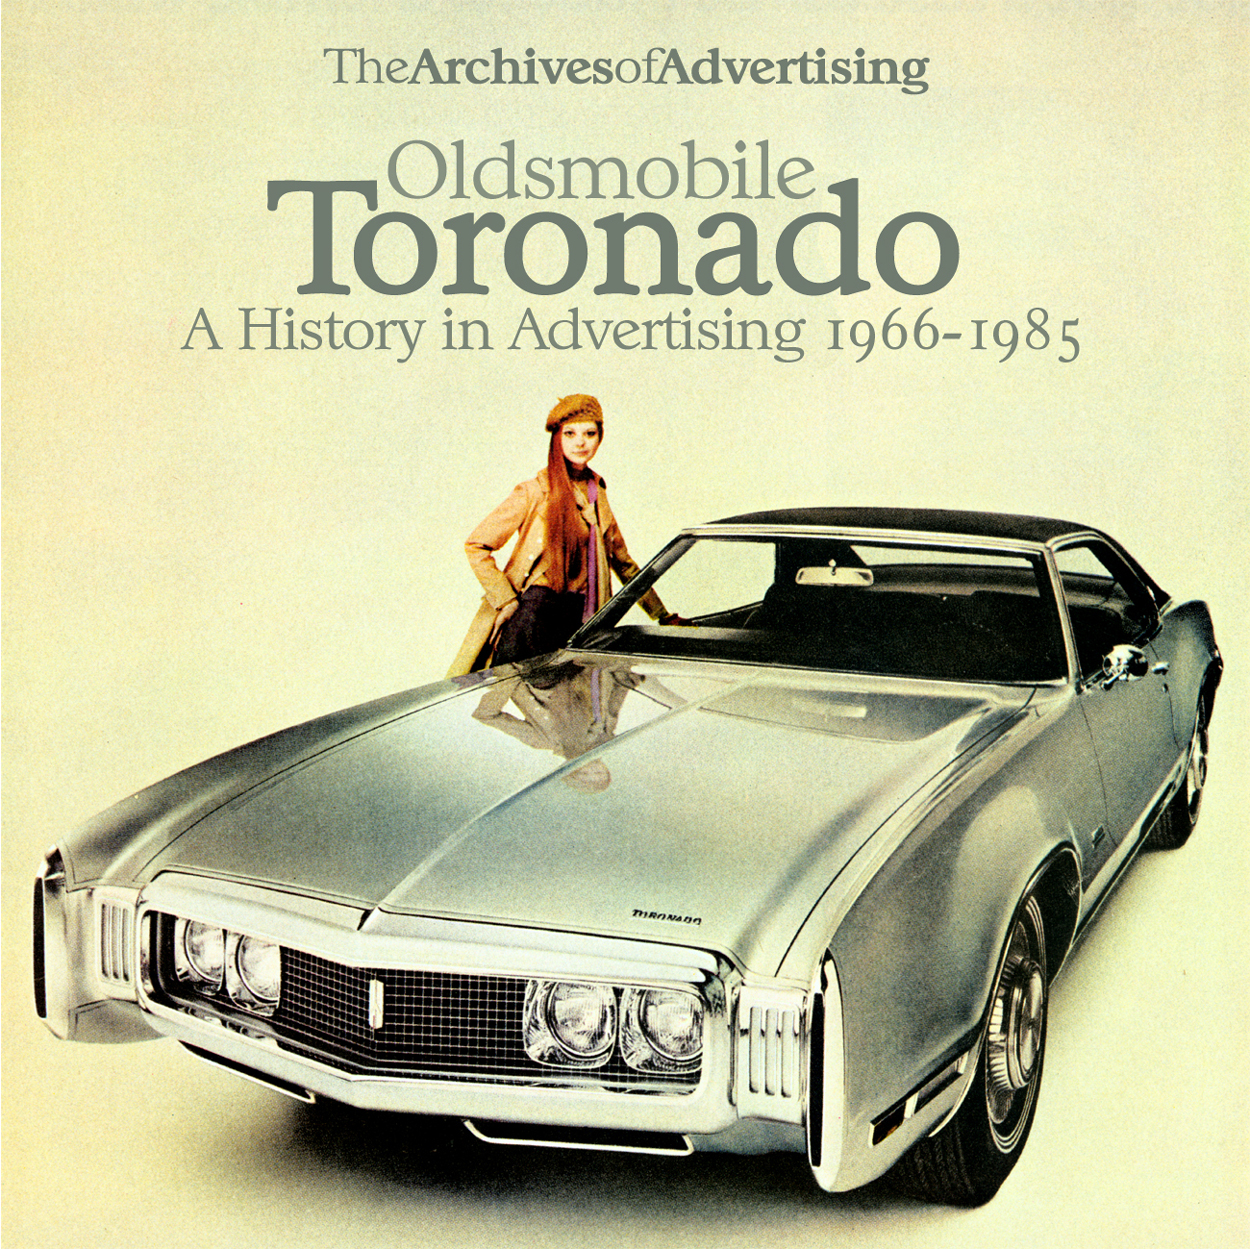 1966 1967 1968 1969 1970 1971 1972 1973-1982 Oldsmobile Toronado ad CD 100+ ads!